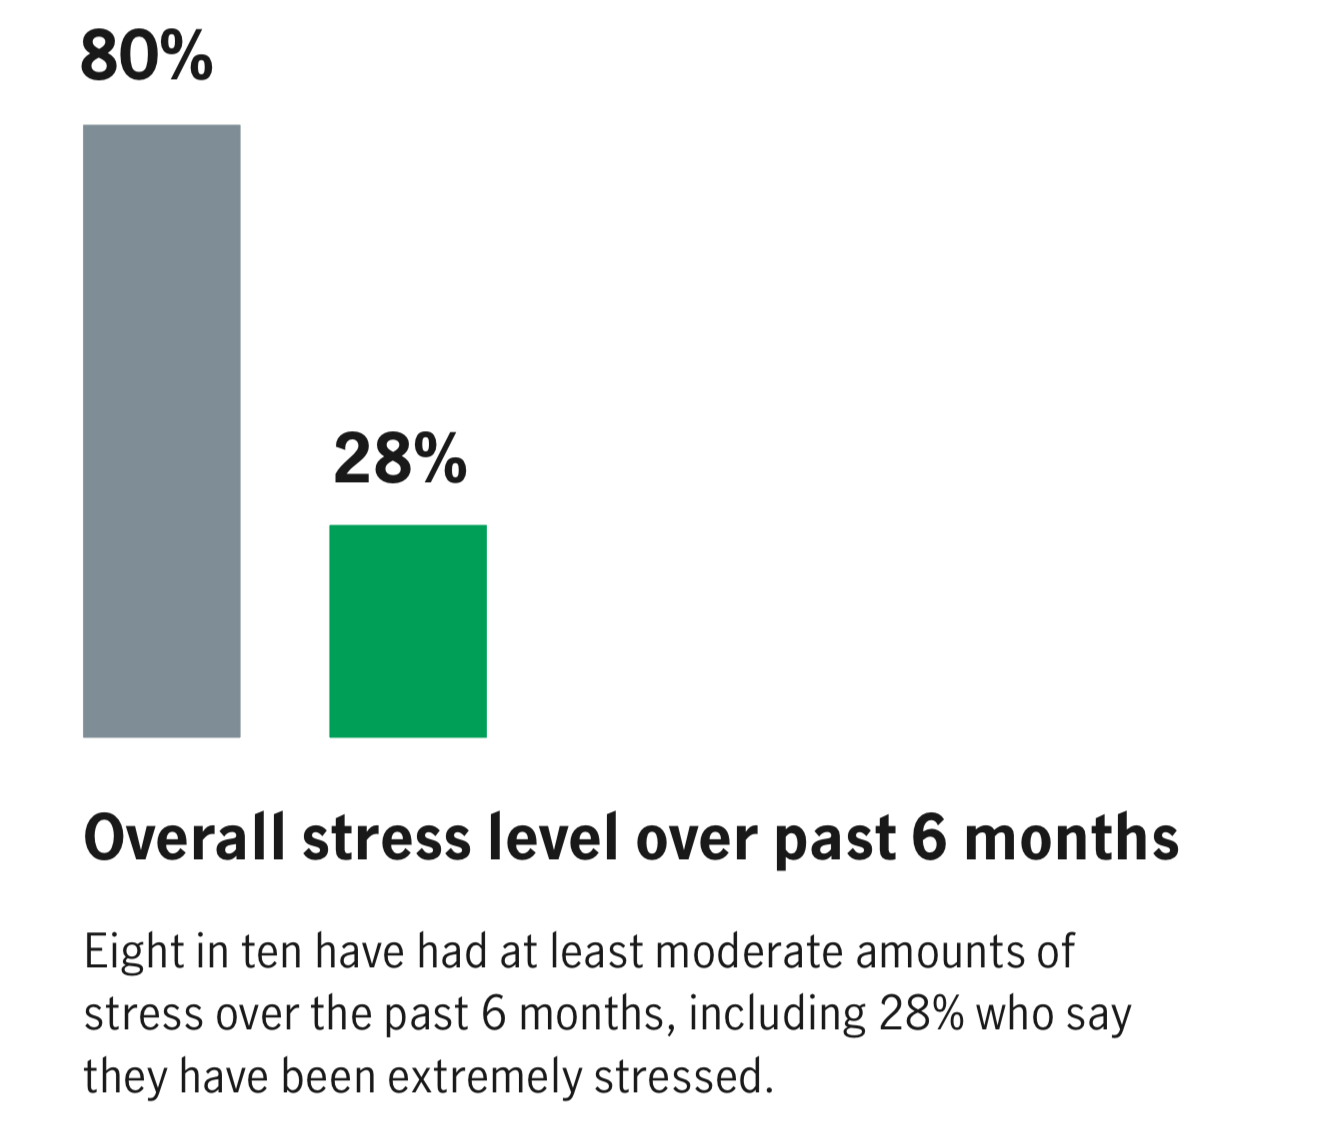 This chart shows that eight in ten have had at least moderate amounts of stress over the past 6 months